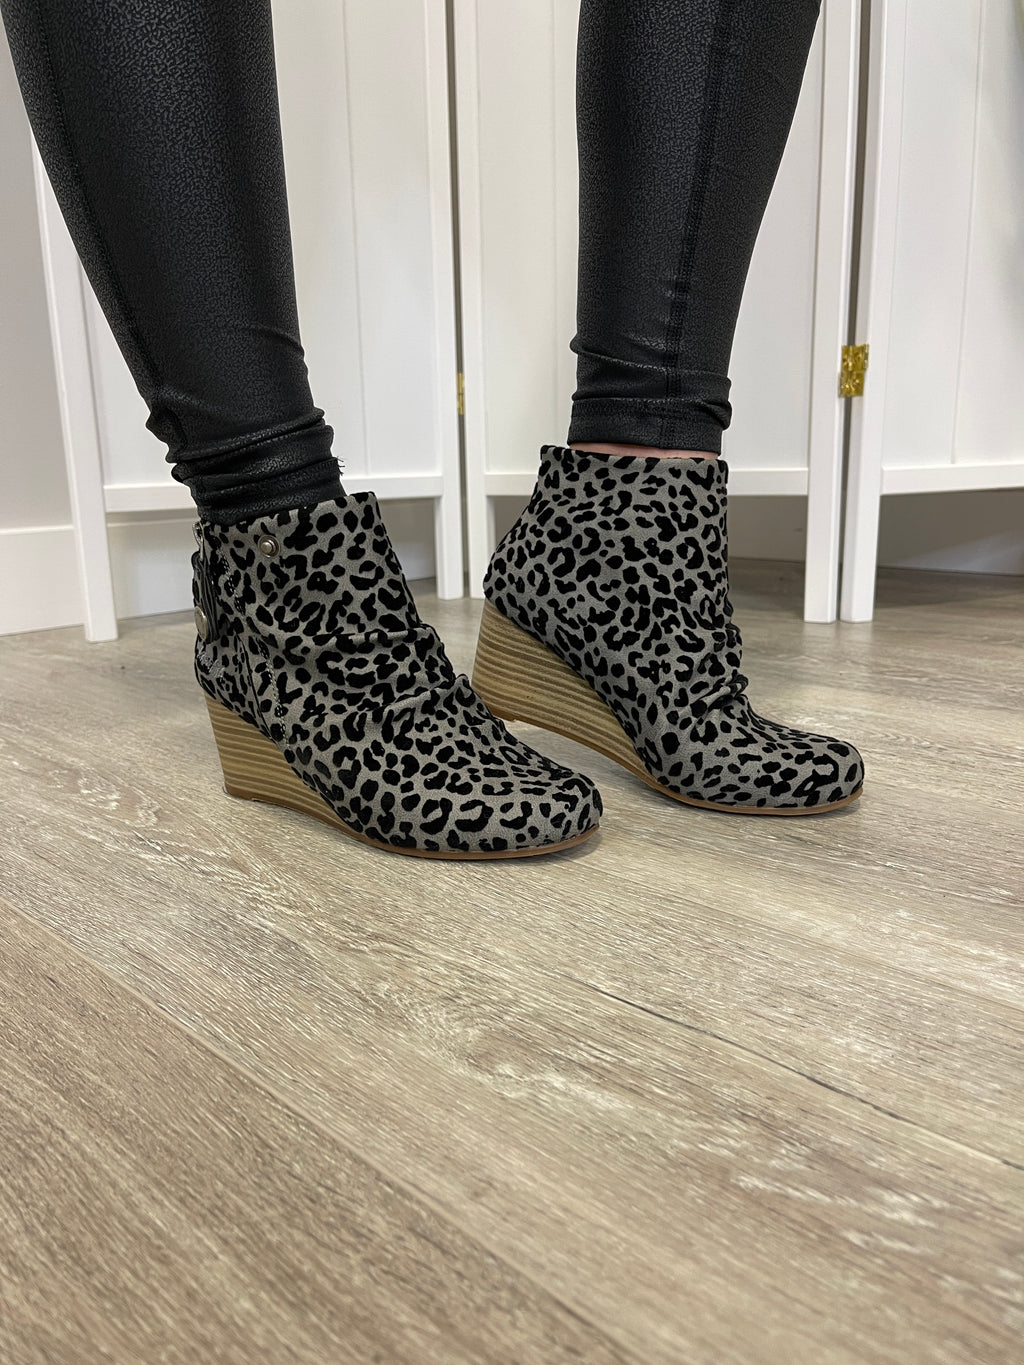 Blowfish BERKELEY |Wedge| Grey Leopard Prospector